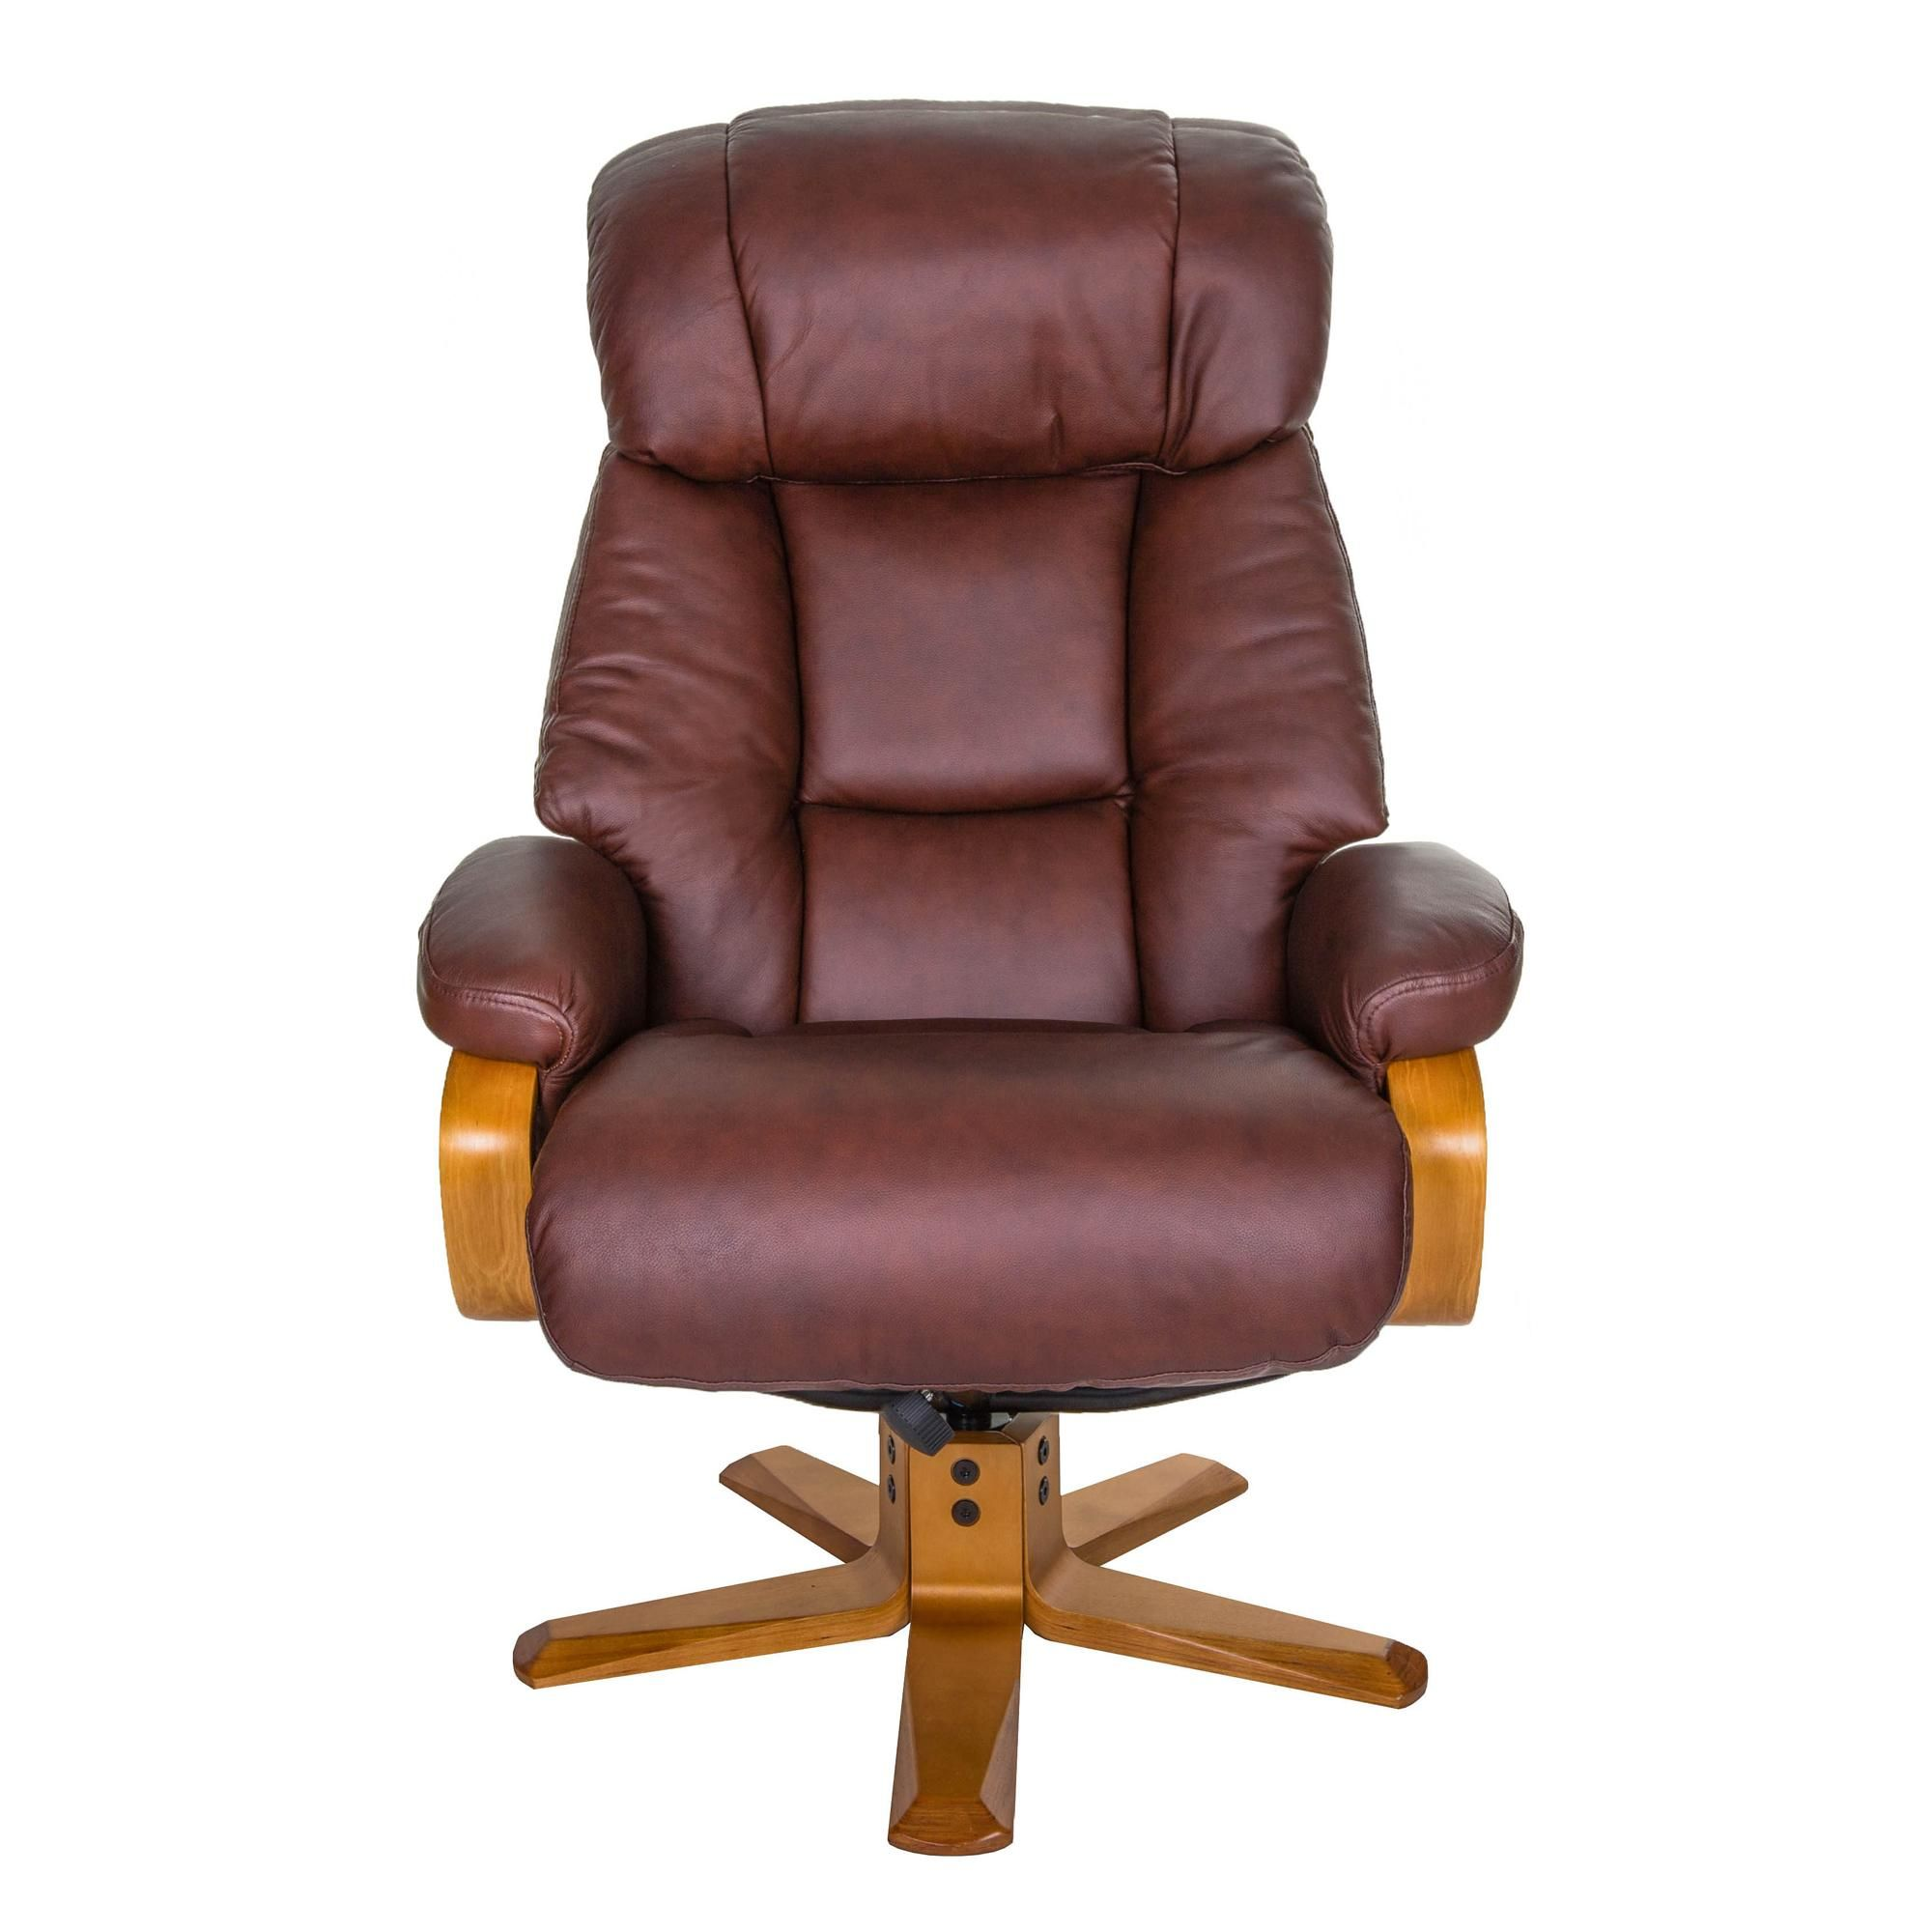 Nice Real Leather Swivel Recliner Chair And Footstool In 2020 Swivel Recliner Chairs Swivel Recliner Recliner